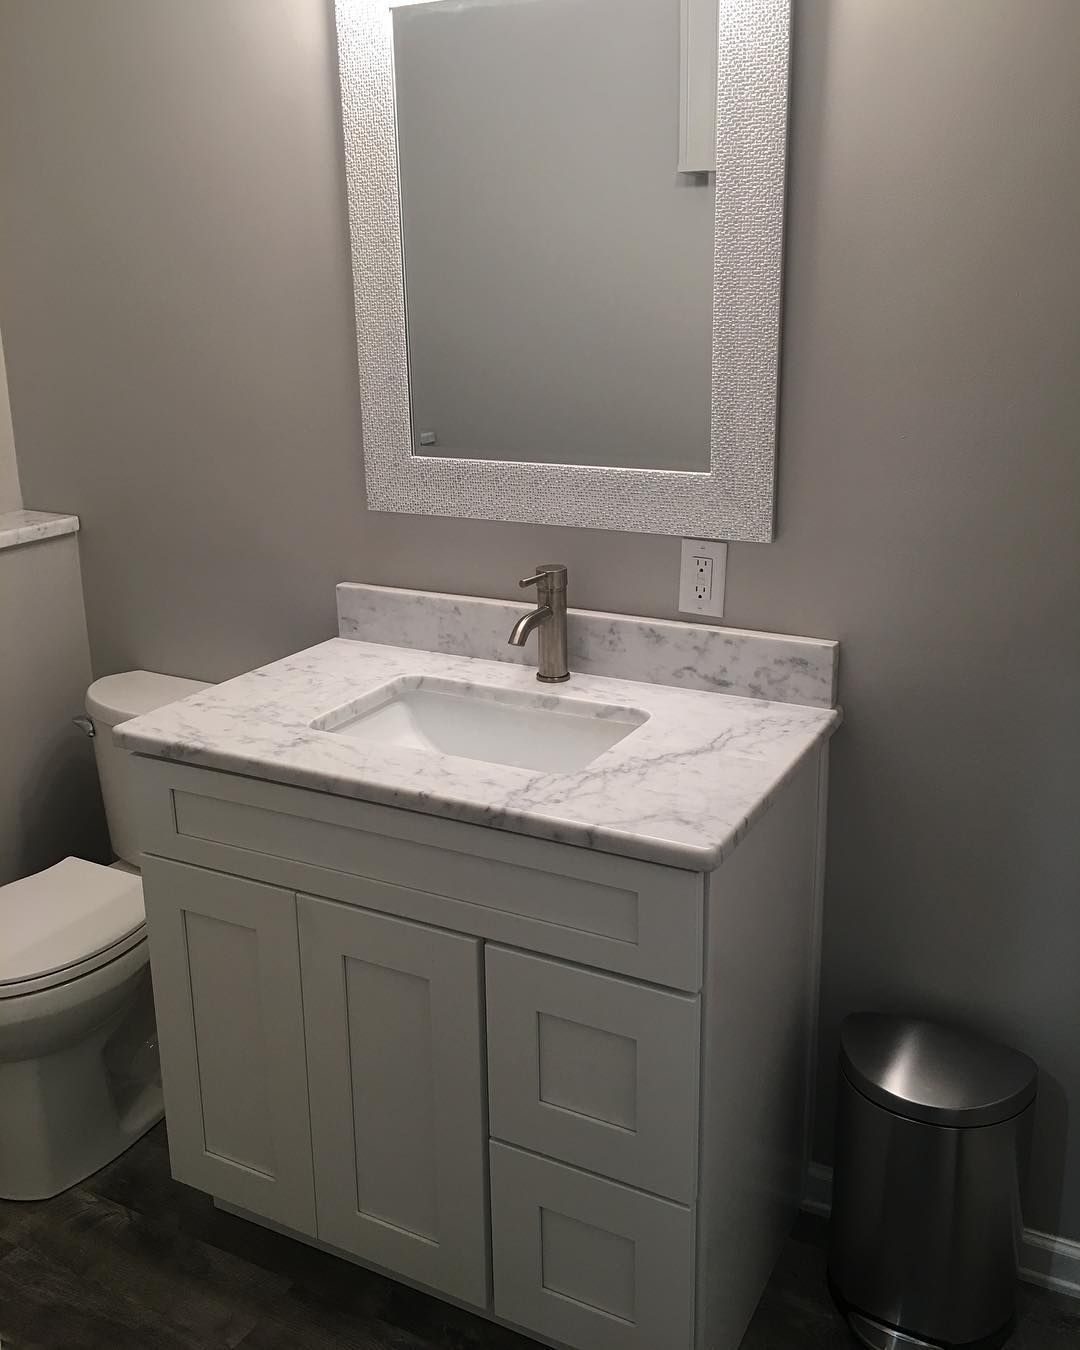 Simple White Shaker Vanity With Calacatta Marble Top Www Clecabinets Com Kitchen Design Showrooms Kitchen Design Software Kitchen Cabinets In Bathroom